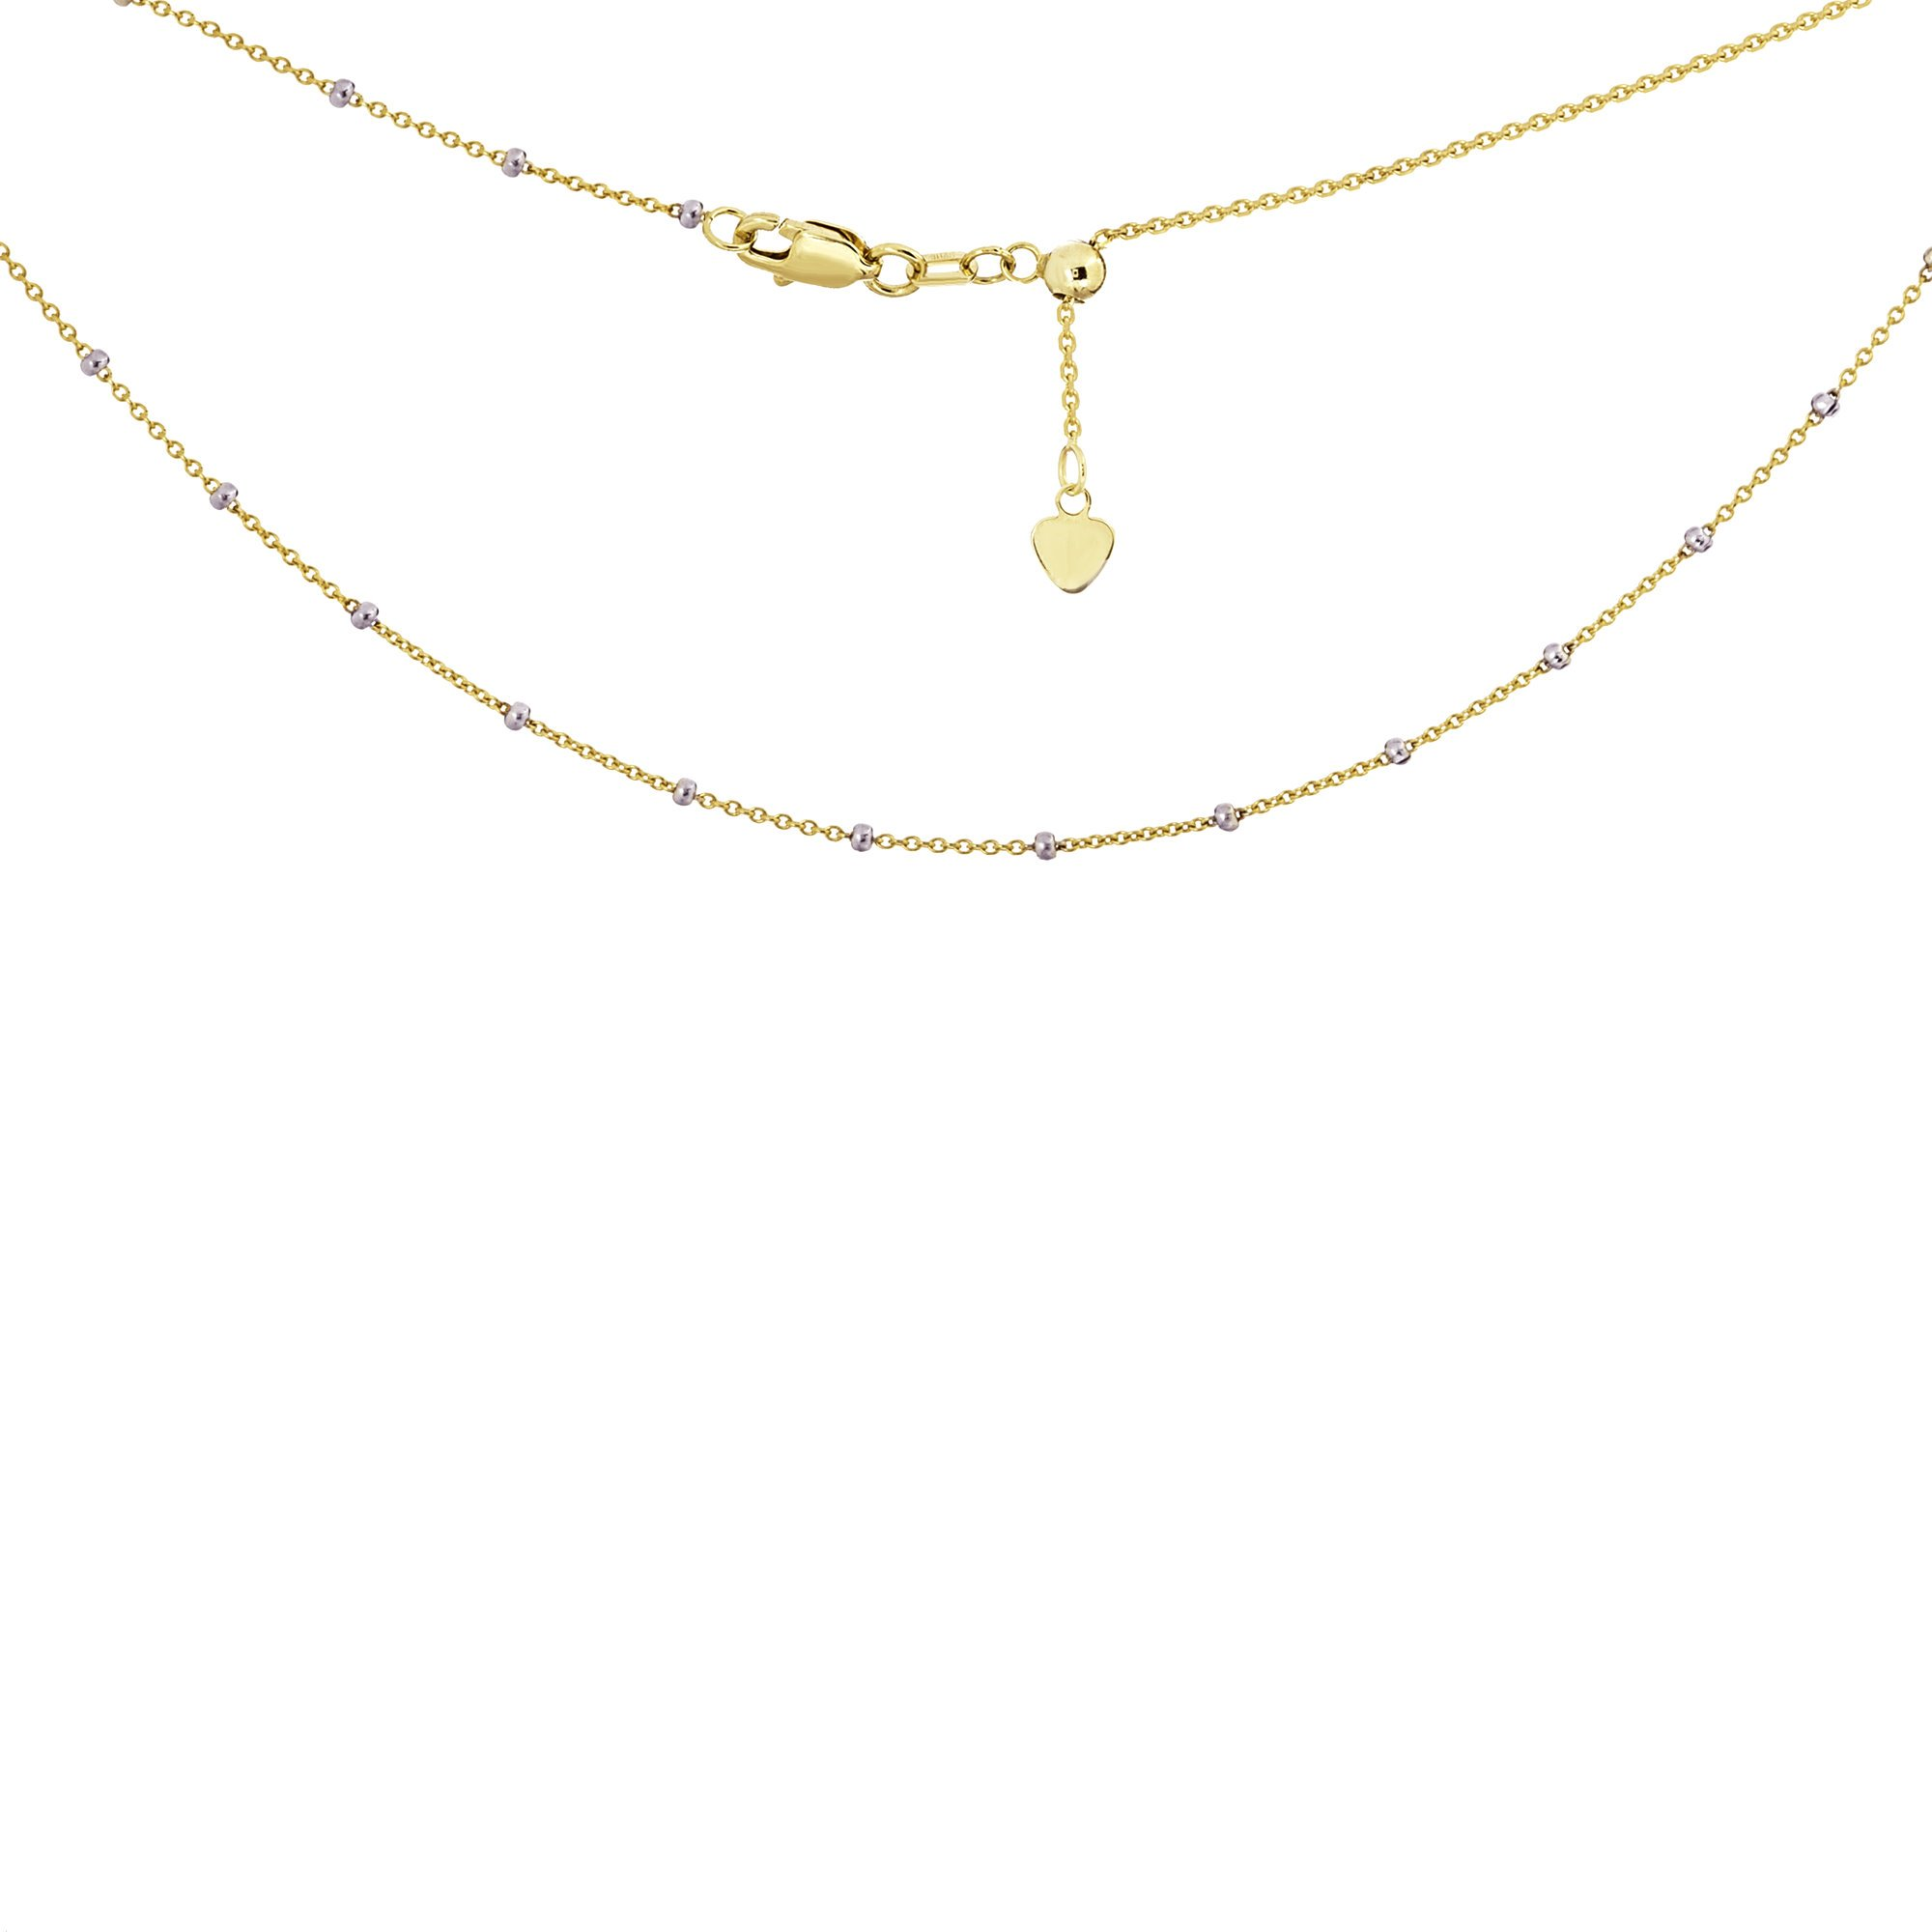 Choker Necklace Saturn Style Chain 14k Yellow and White Gold - Adjustable